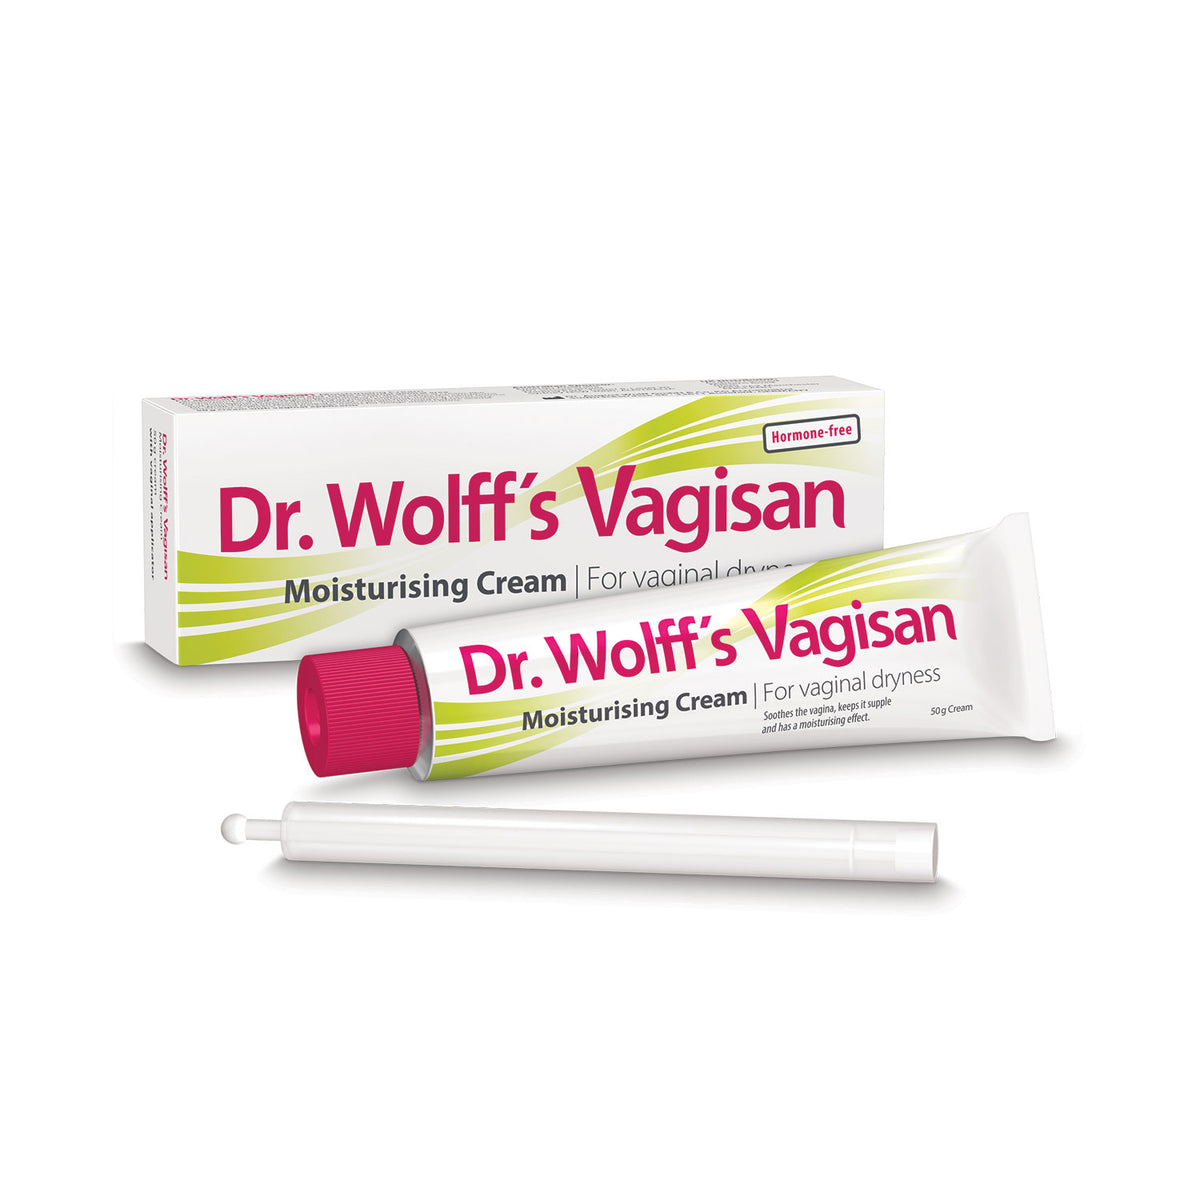 Dr Wolff's Vagisan